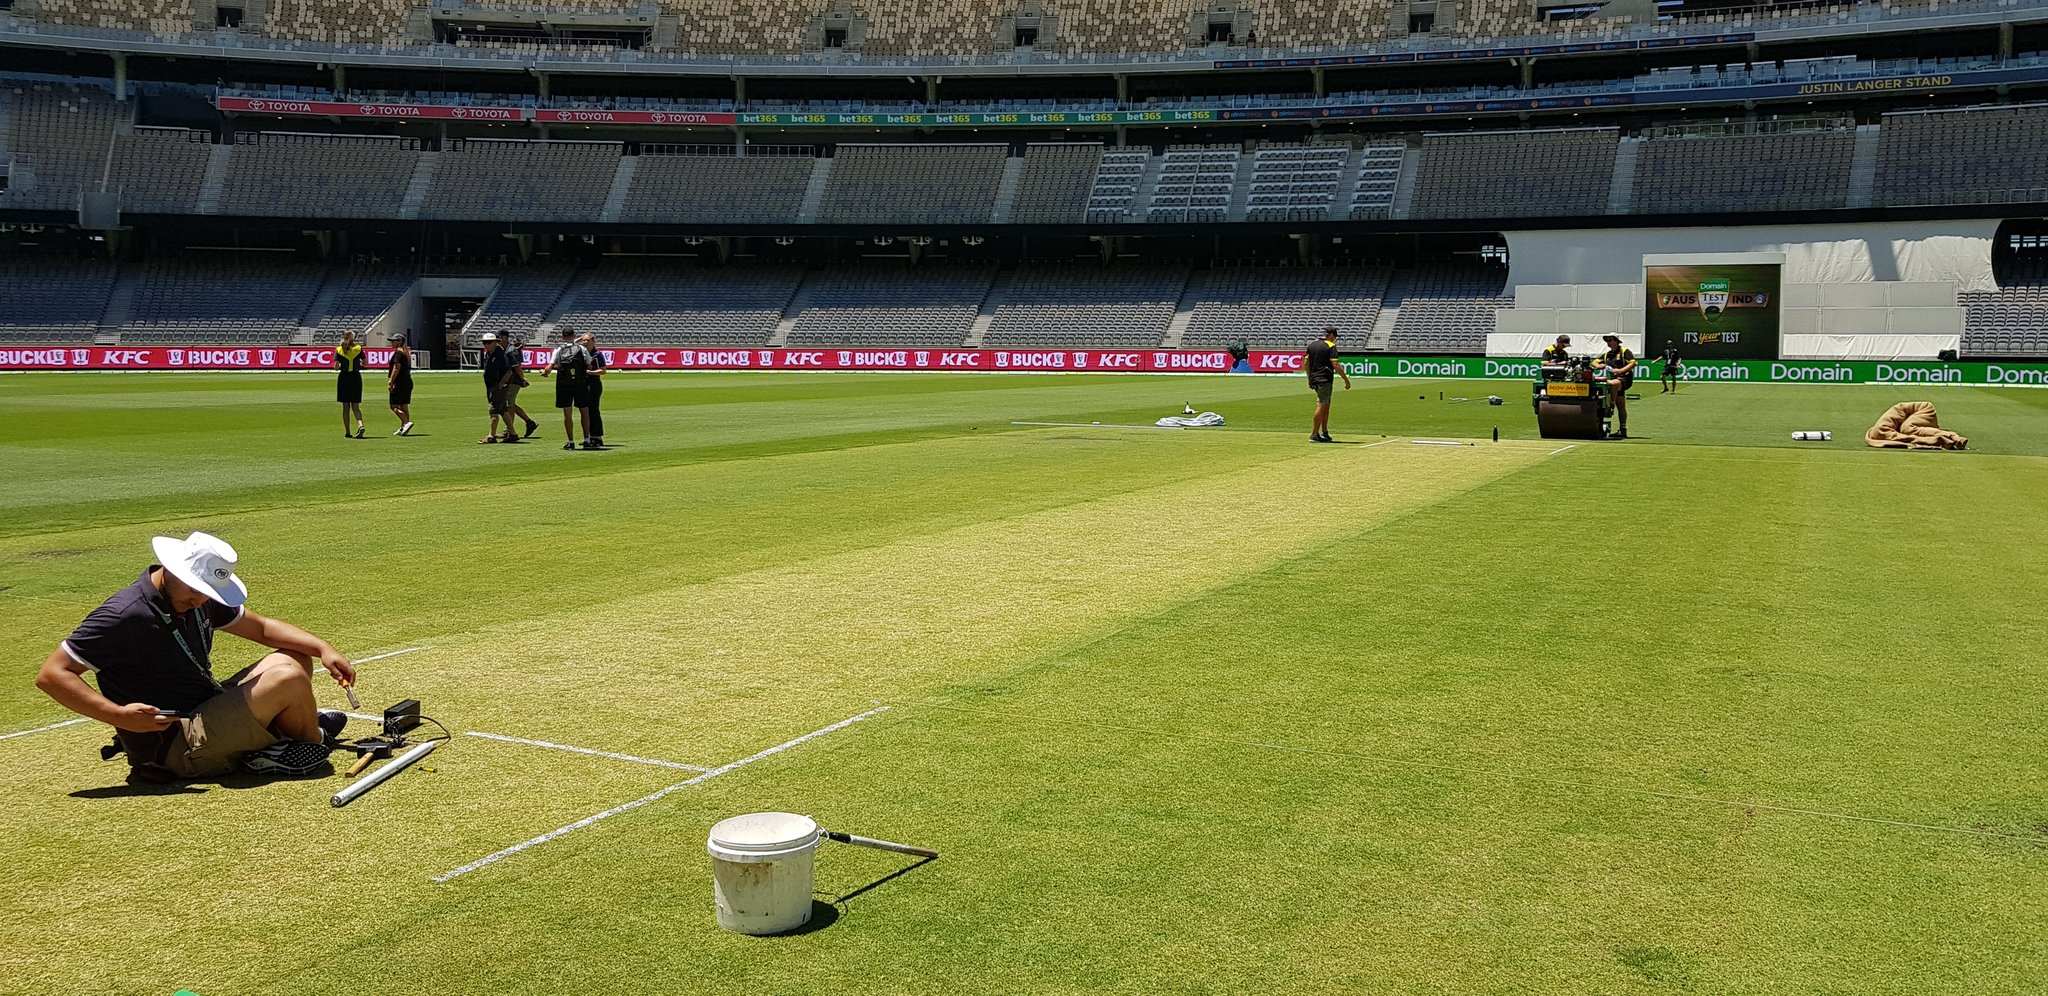 The Optus Perth Stadium saw its first Test match two years ago when India took on Australia